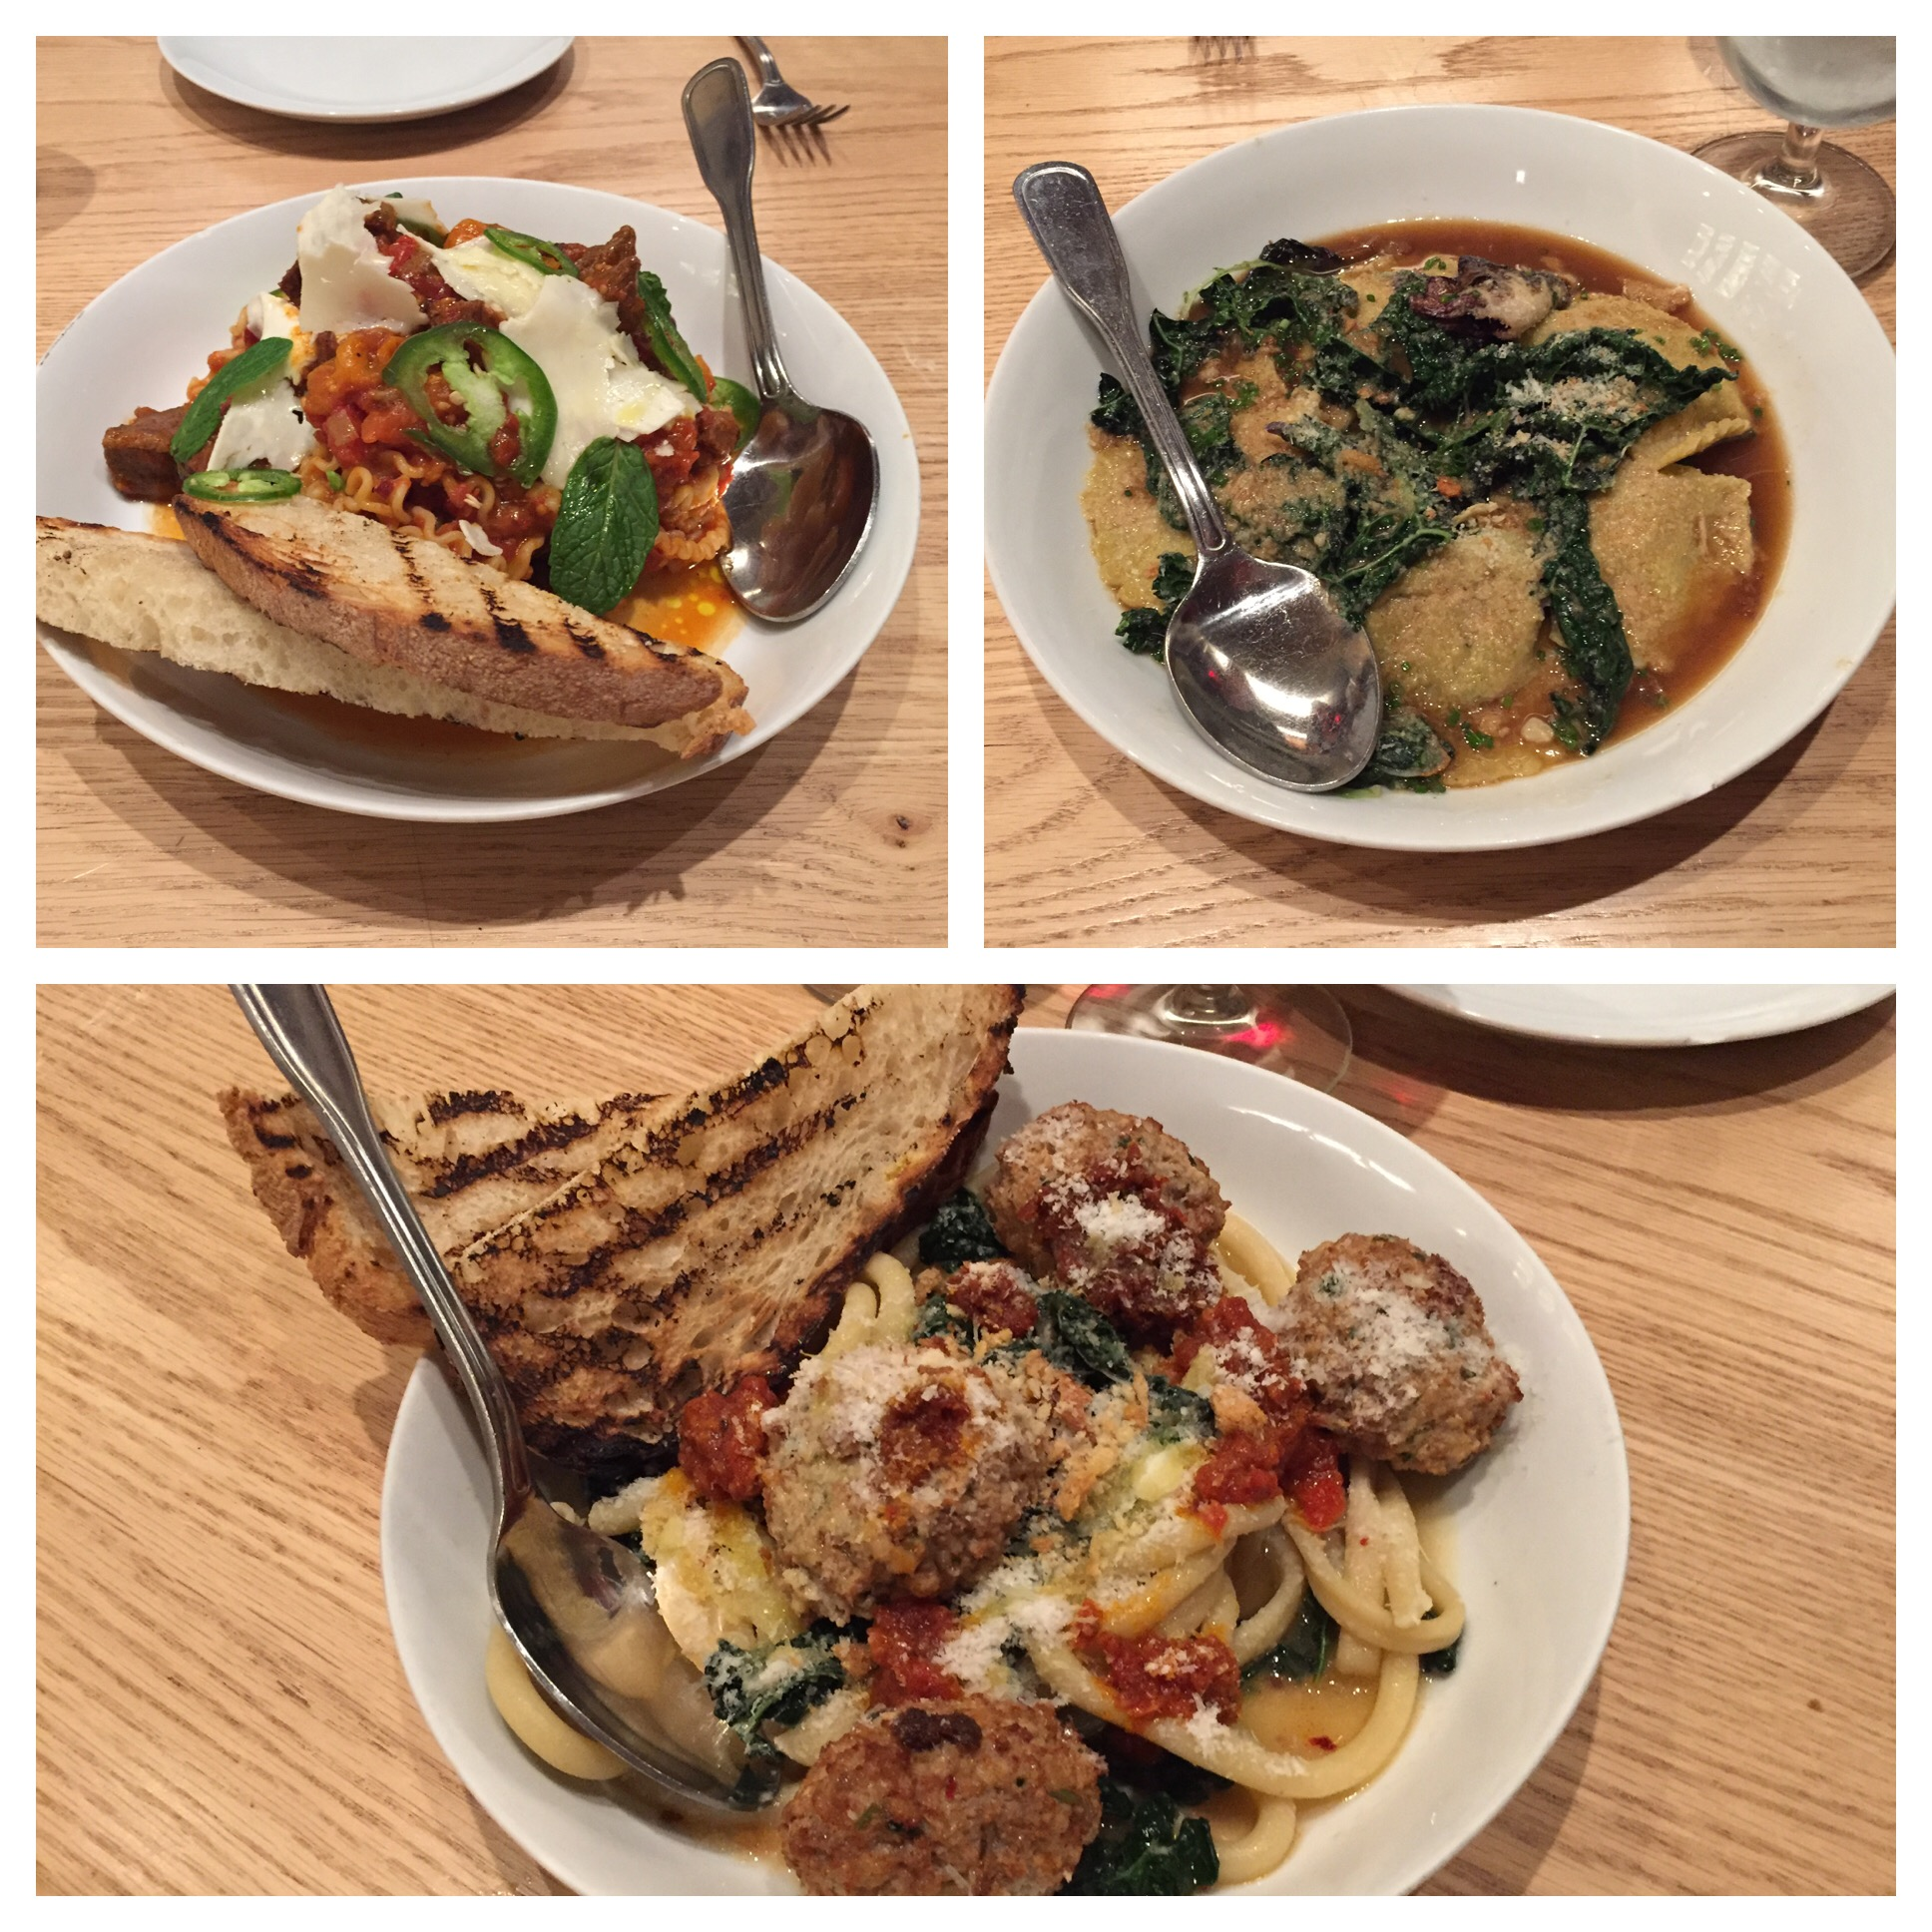 Reginette Pasta with Curried Beef Ragu, Smoked Beef Raviolis and Bucatini Pasta with Pork and Ricotta Meatballs.